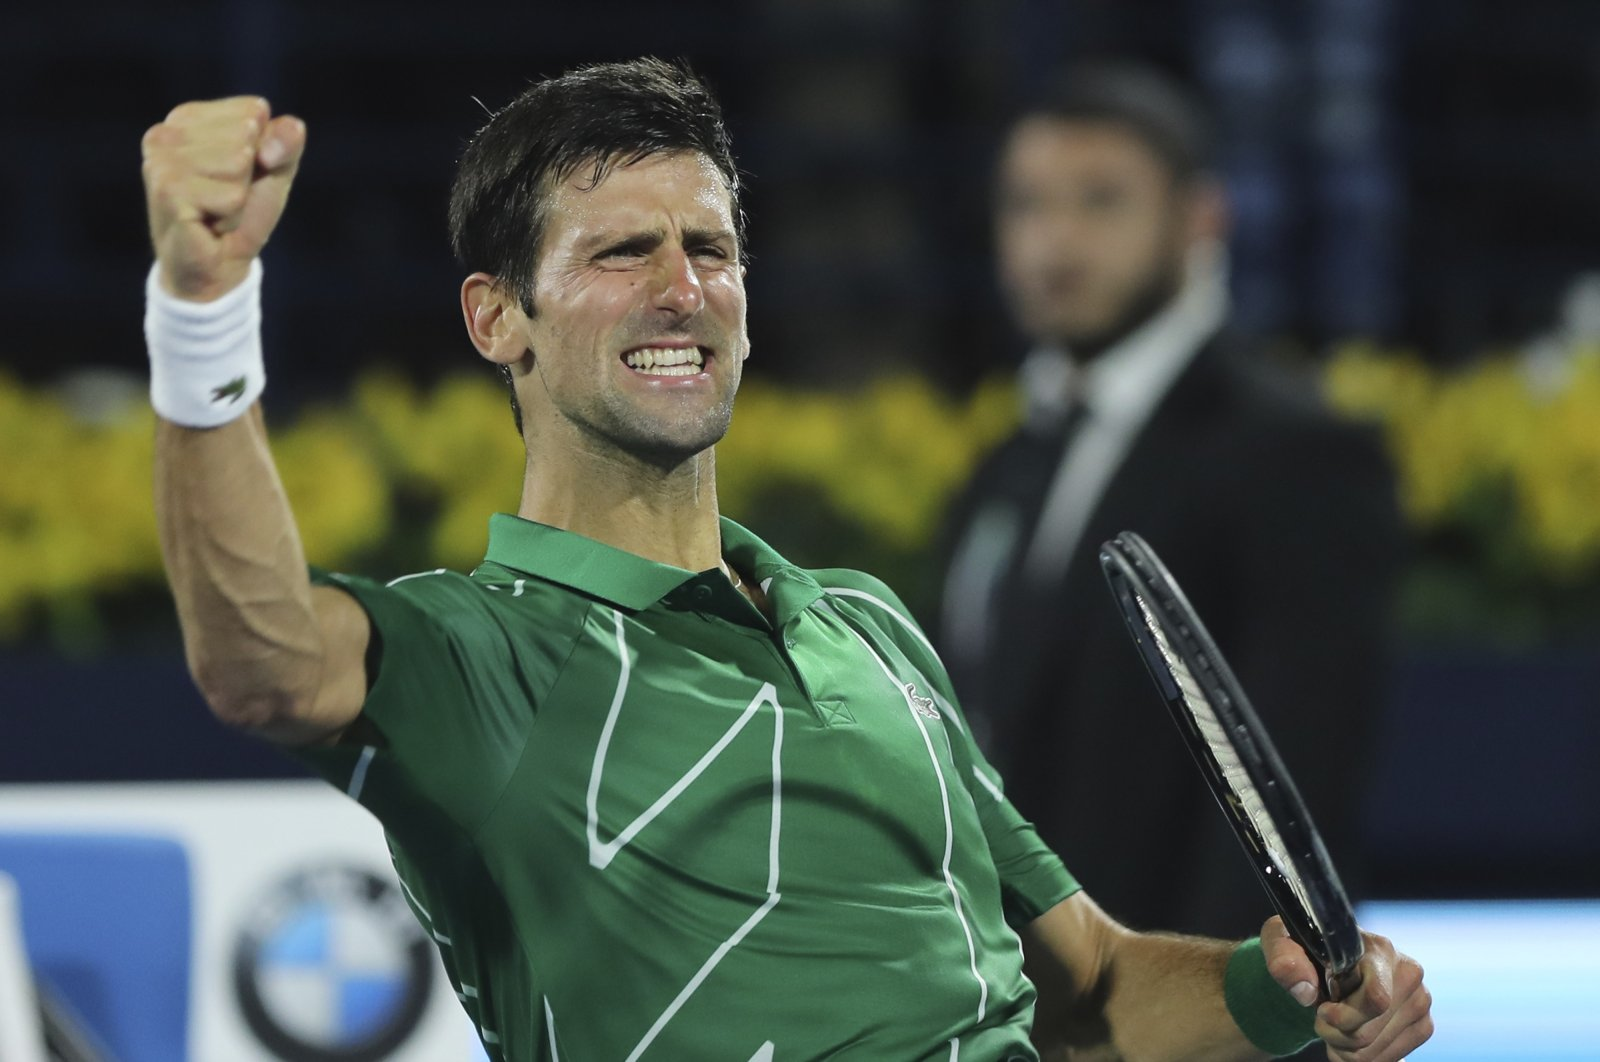 Novak Djokovic celebrates after he beating Stefanos Tsitsipas in the final match of the Dubai Duty Free Tennis Championship in Dubai, United Arab Emirates, Feb. 29, 2020. (AP Photo)